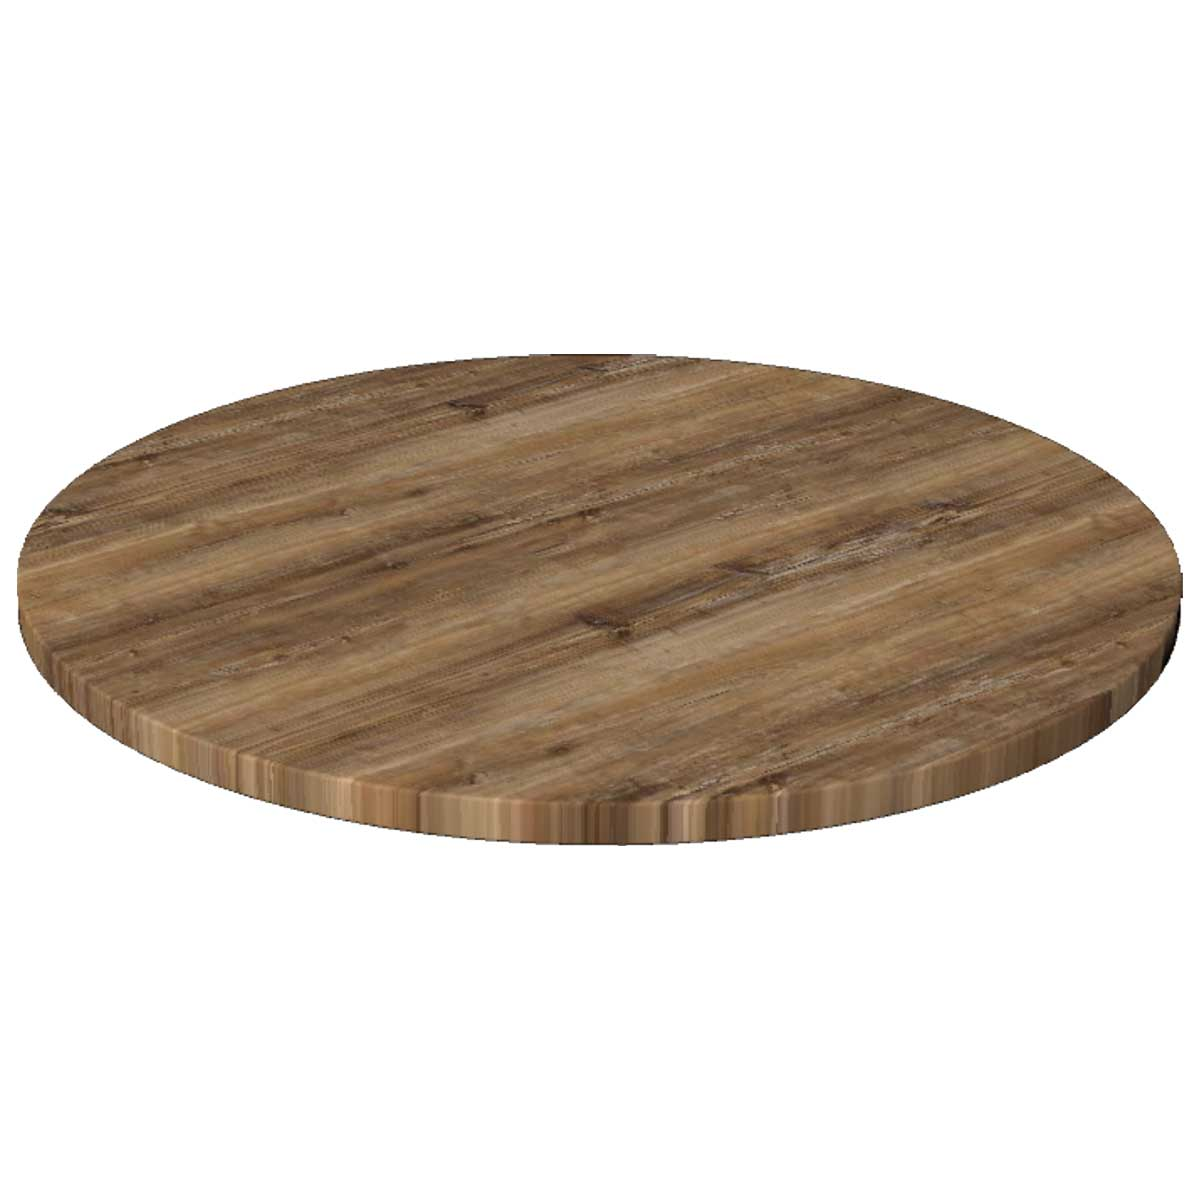 TICAM R60 4587 - https://www.werzalit.com/en/product/table-top-cambium-r-oe60cm-board-thickness-39cm-decor-bruges/